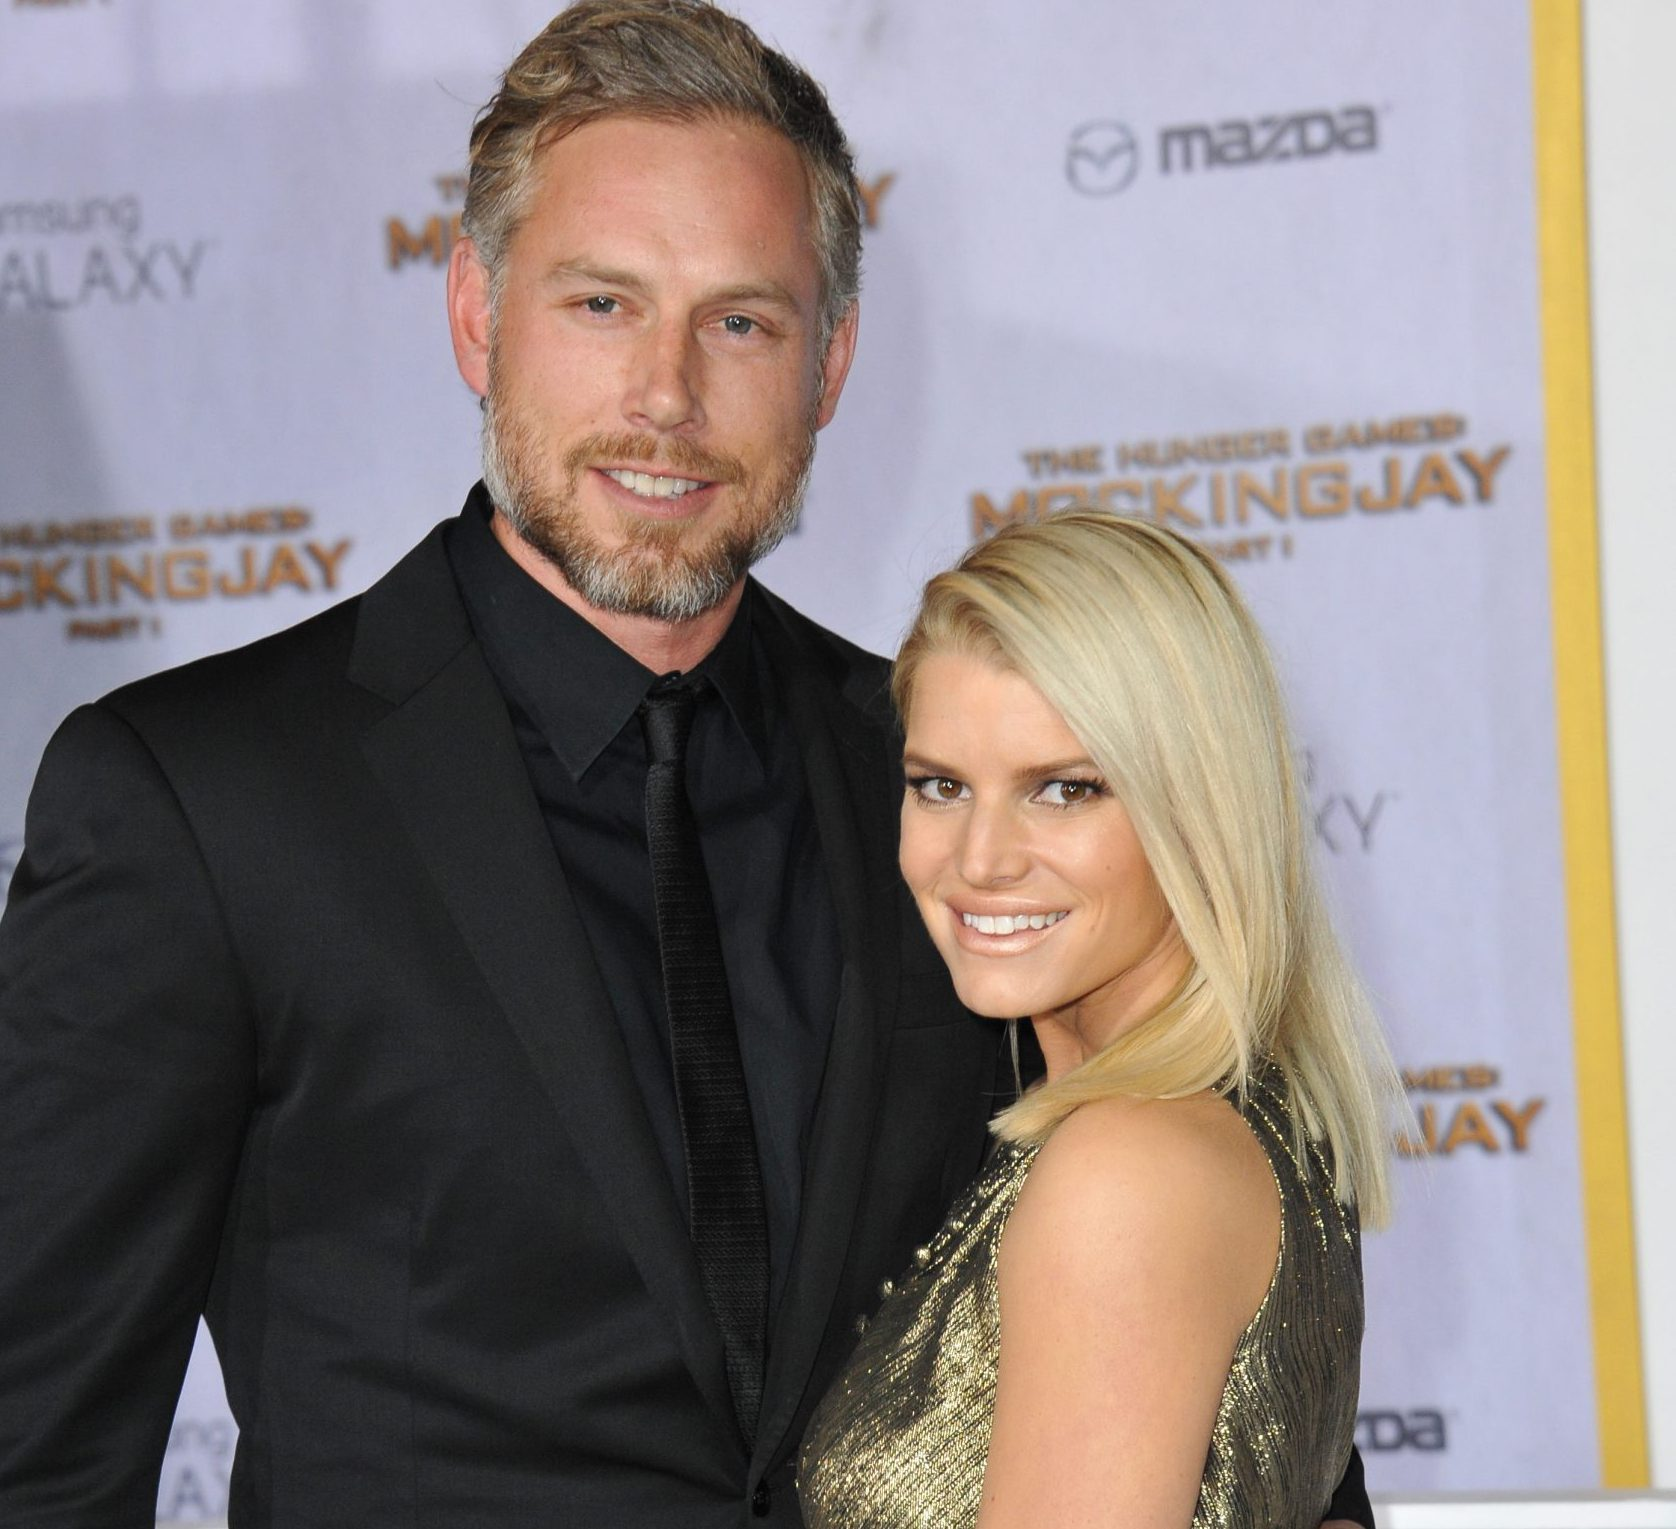 Eric Johnson and Jessica Simpson smile at a red carpet event. He is tall and wears a black suit. She wears a sleeveless gold dress and has straight blonde hair that sits just past her shoulders.